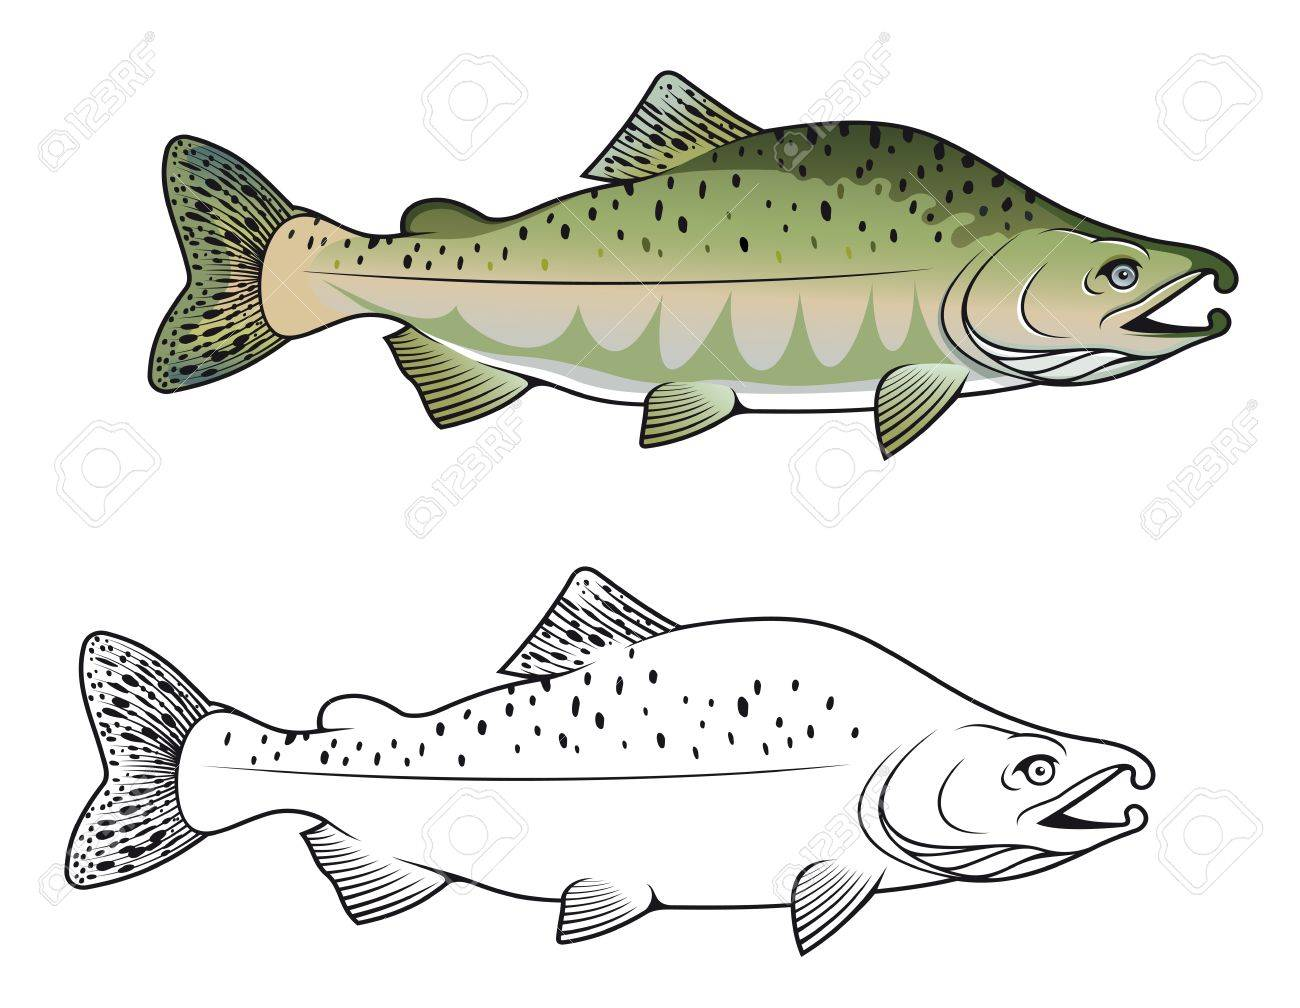 8 223 fresh salmon cliparts stock vector and royalty free fresh